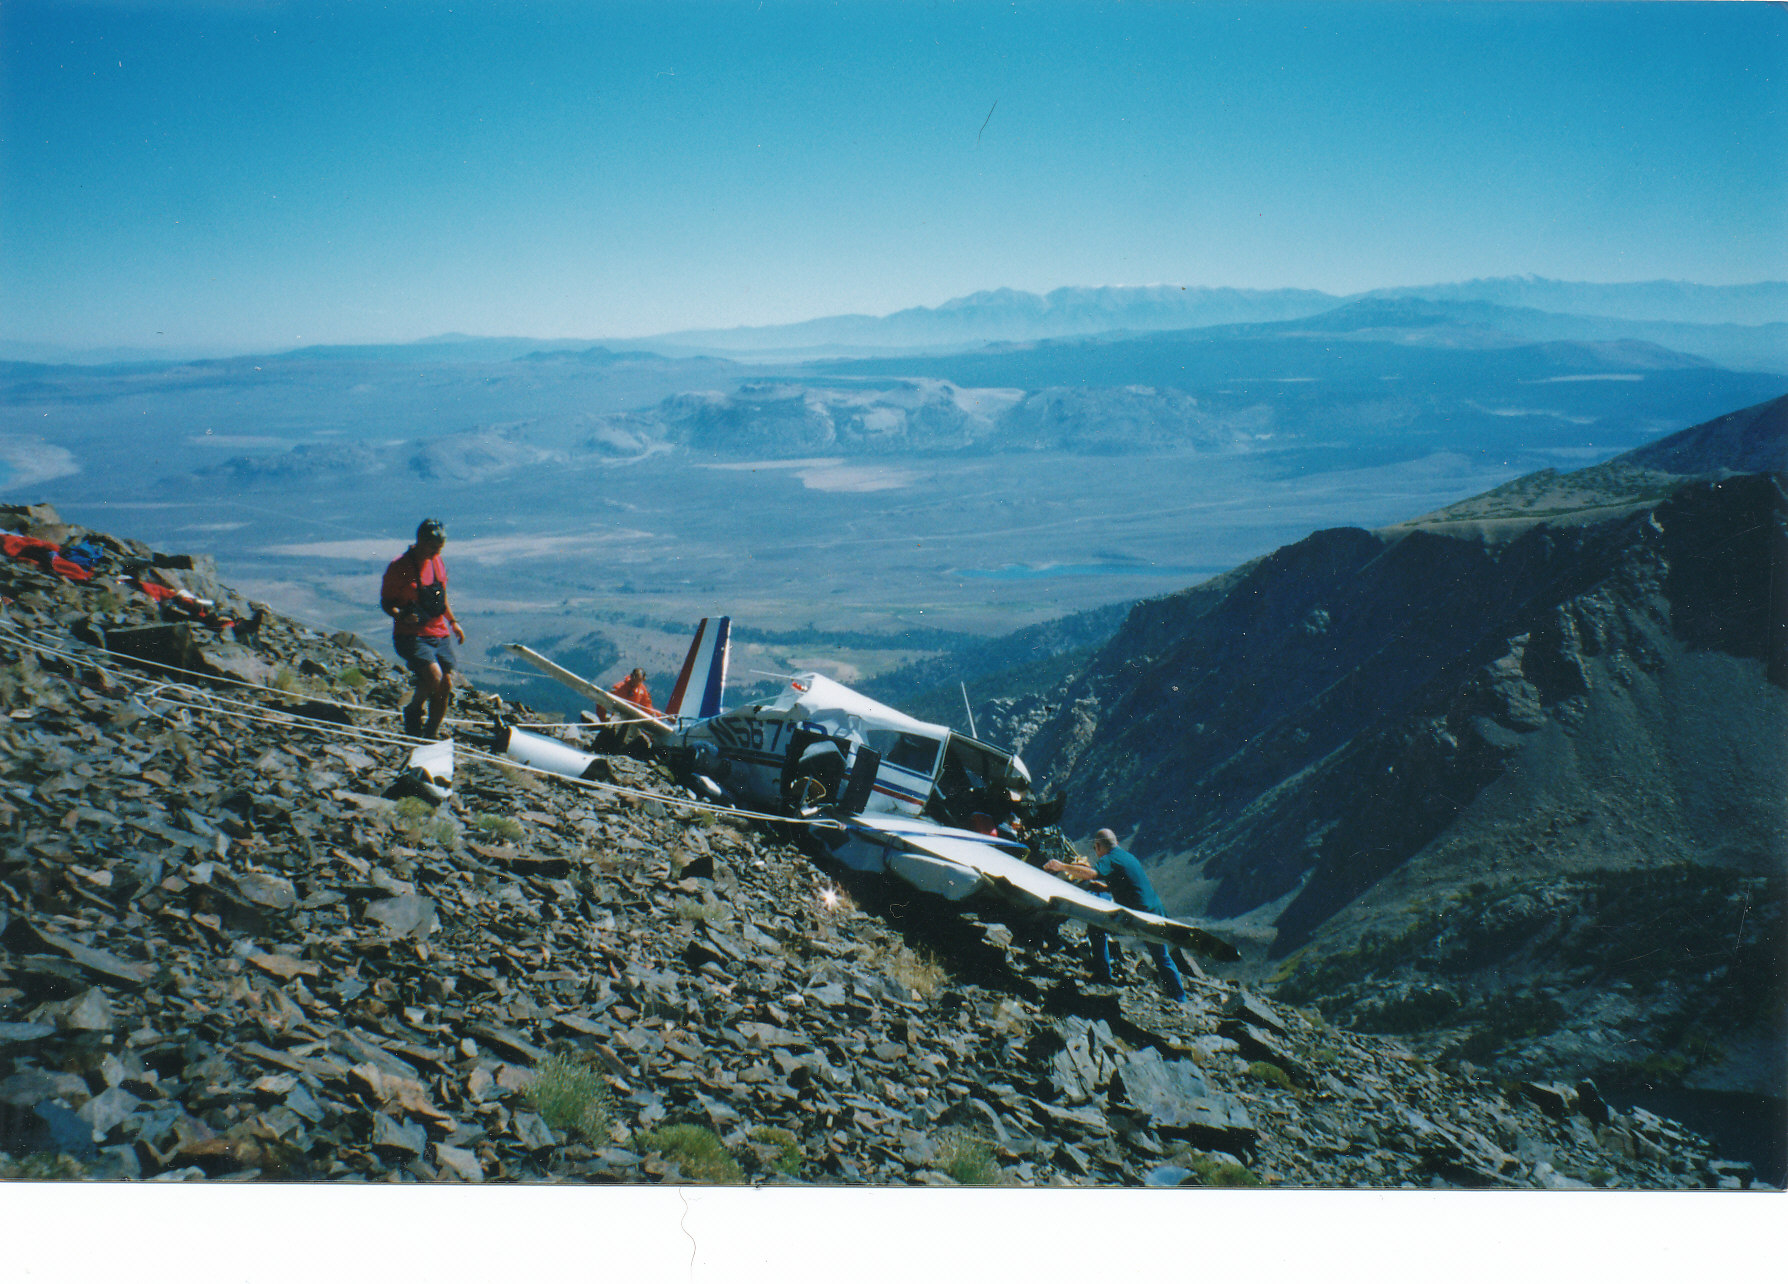 Recovering the victims of a plane crash at 11,000 ft.